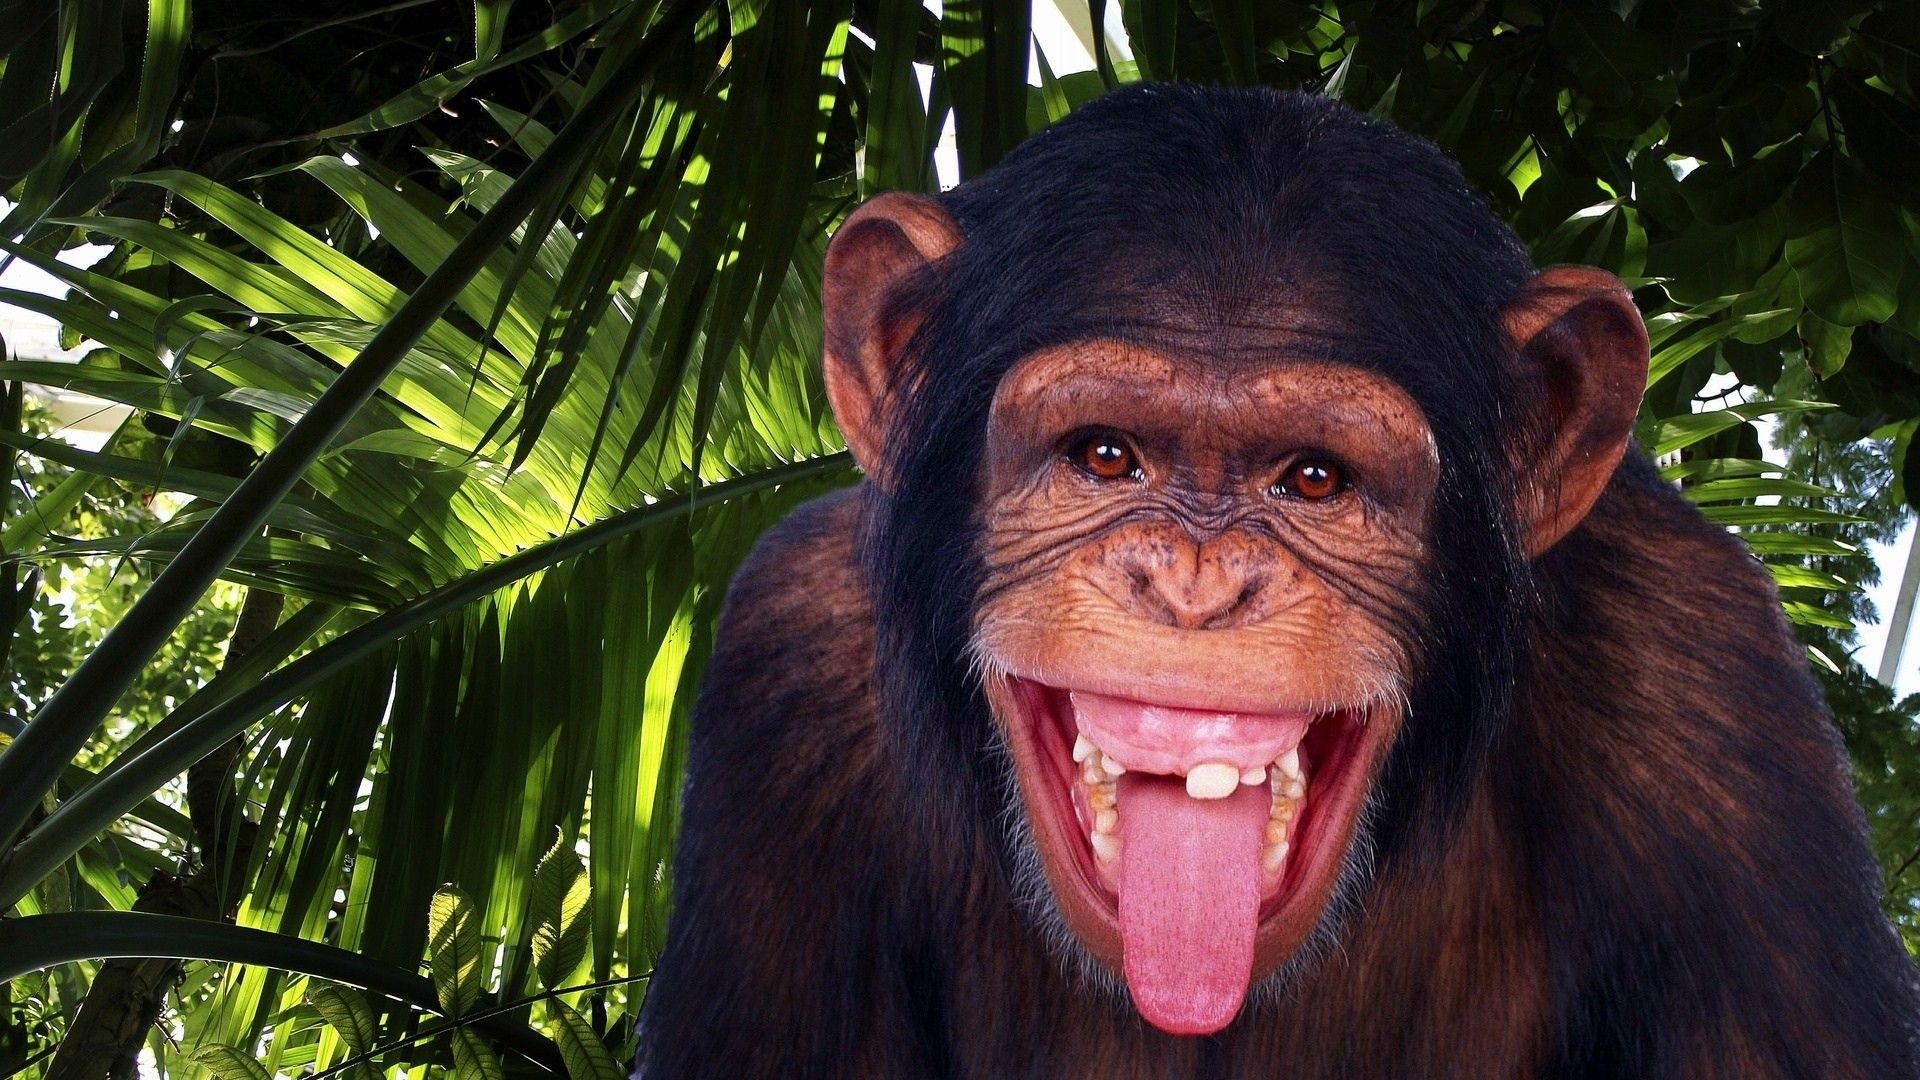 The Picture Is A Monkey With No Teeth